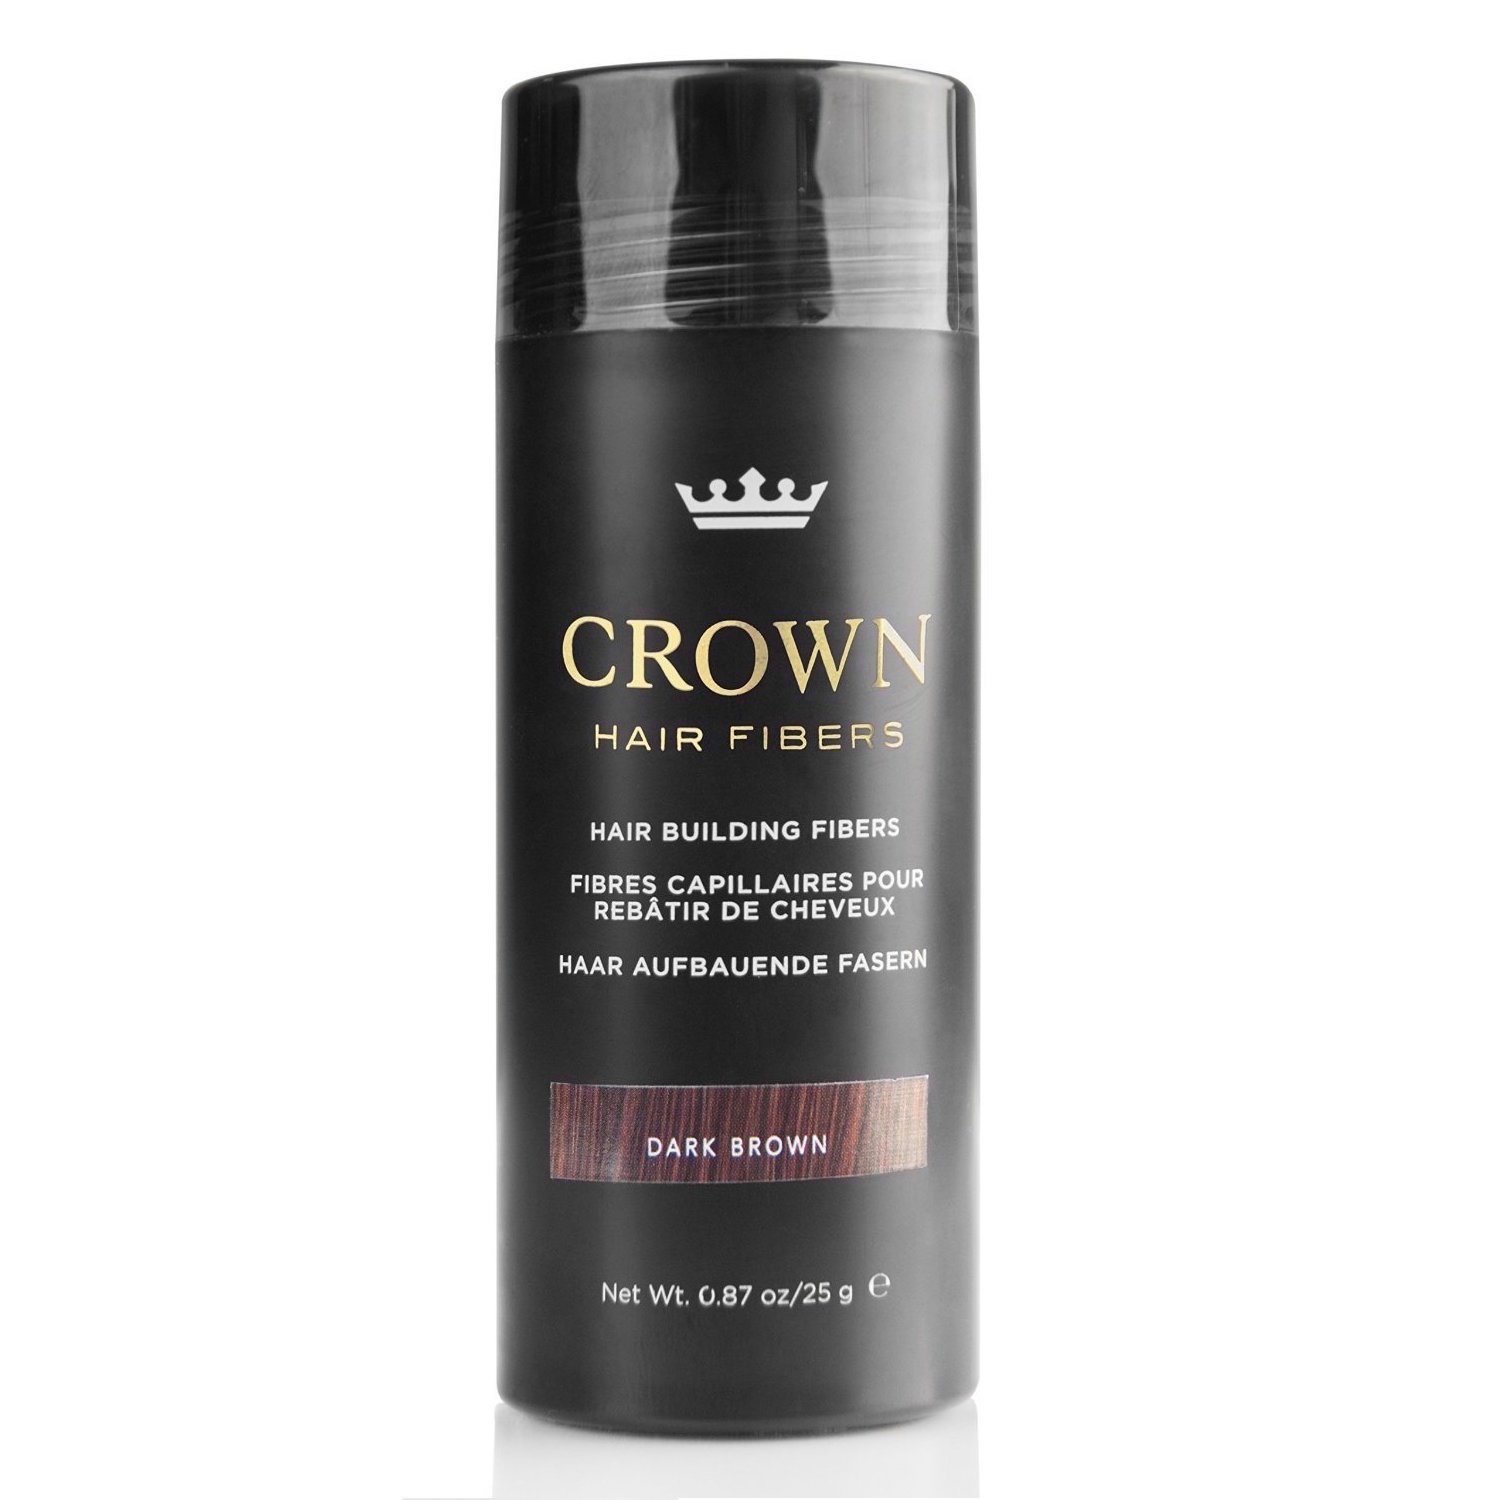 CROWN Hair Fibers - Best Keratin Hair Fibers Instantly Thickens Thinning Hair for Men and Women - Natural Hair Loss Concealer 0.87oz - Dark Brown by CROWN